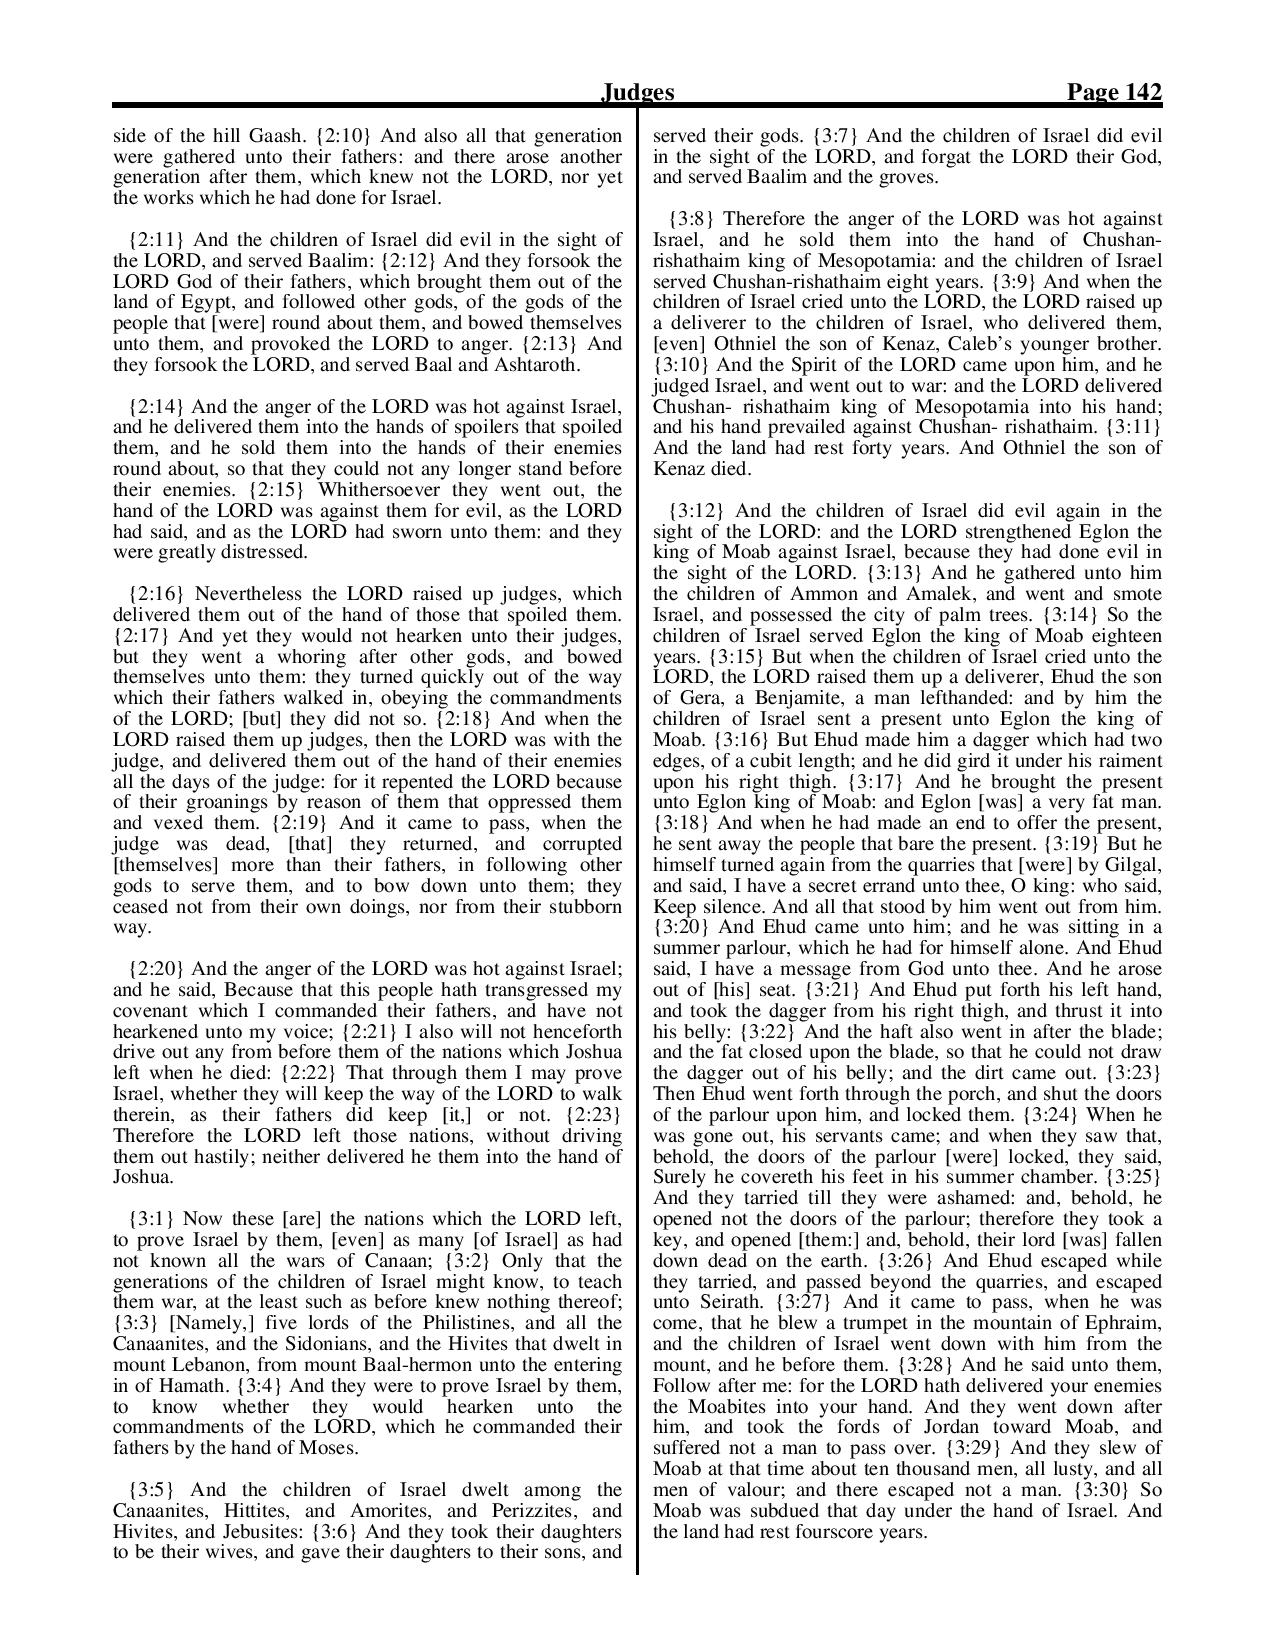 King-James-Bible-KJV-Bible-PDF-page-163